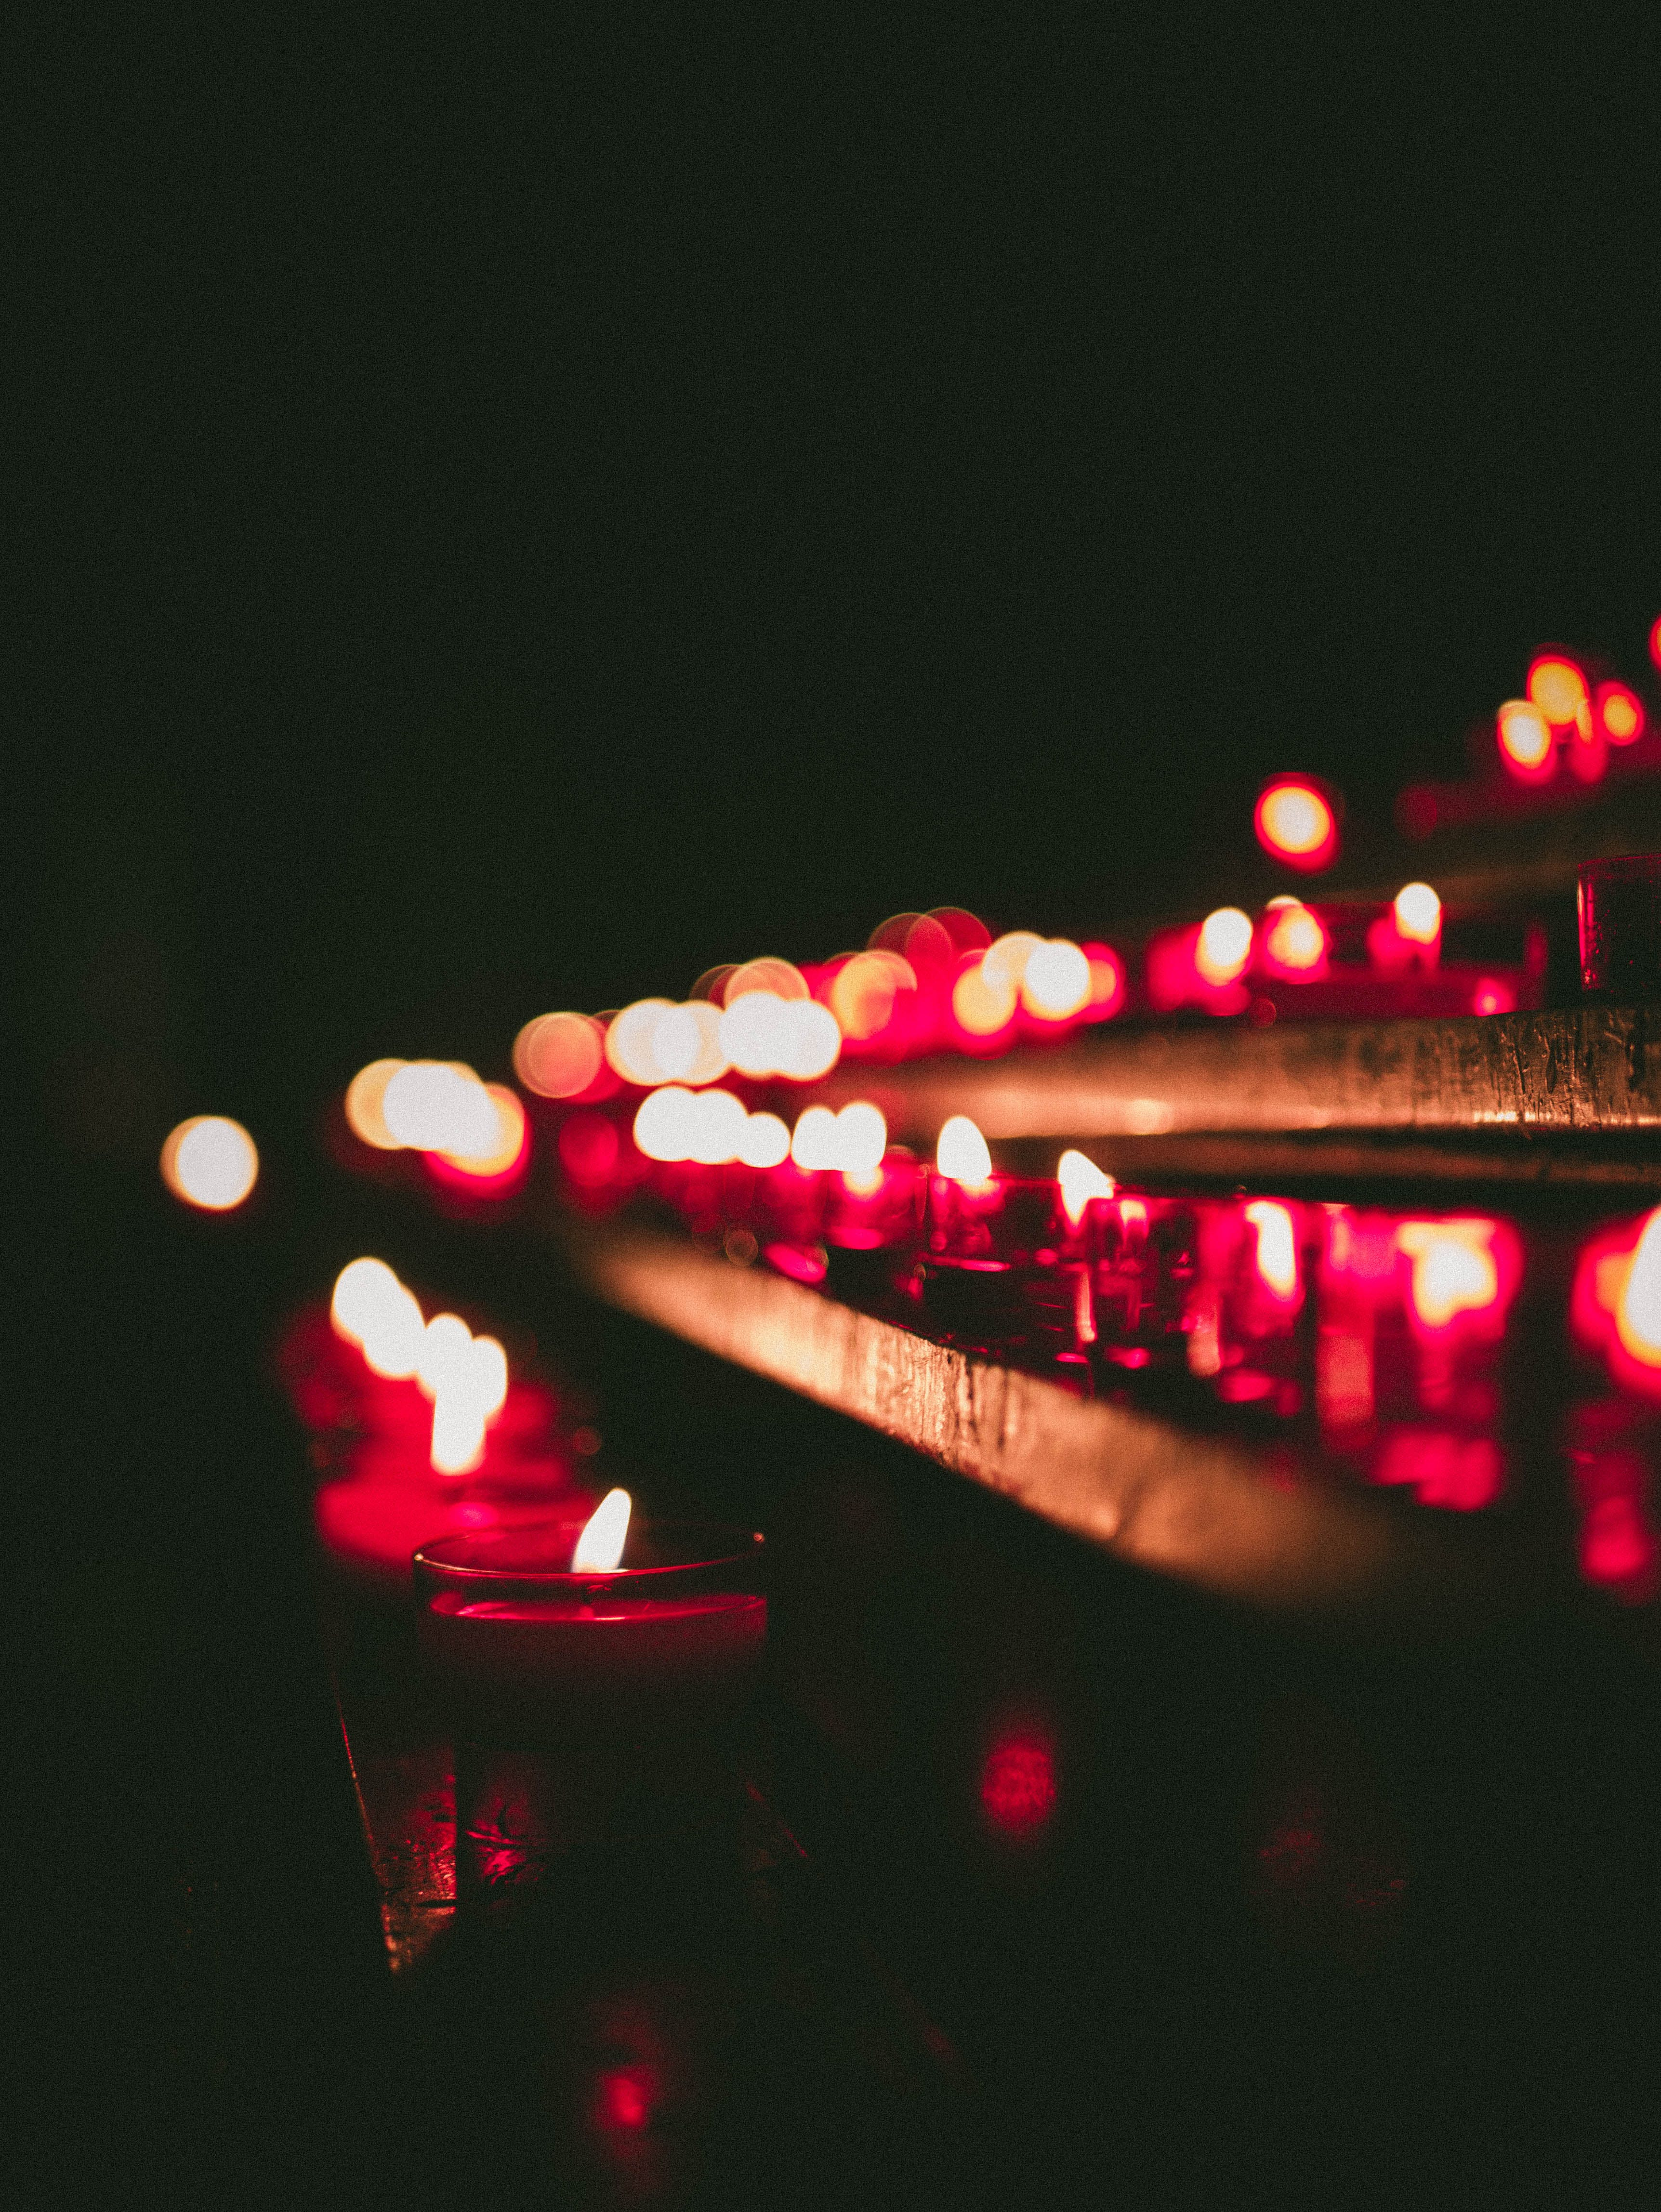 Bokeh Photography Of Lighted Candles